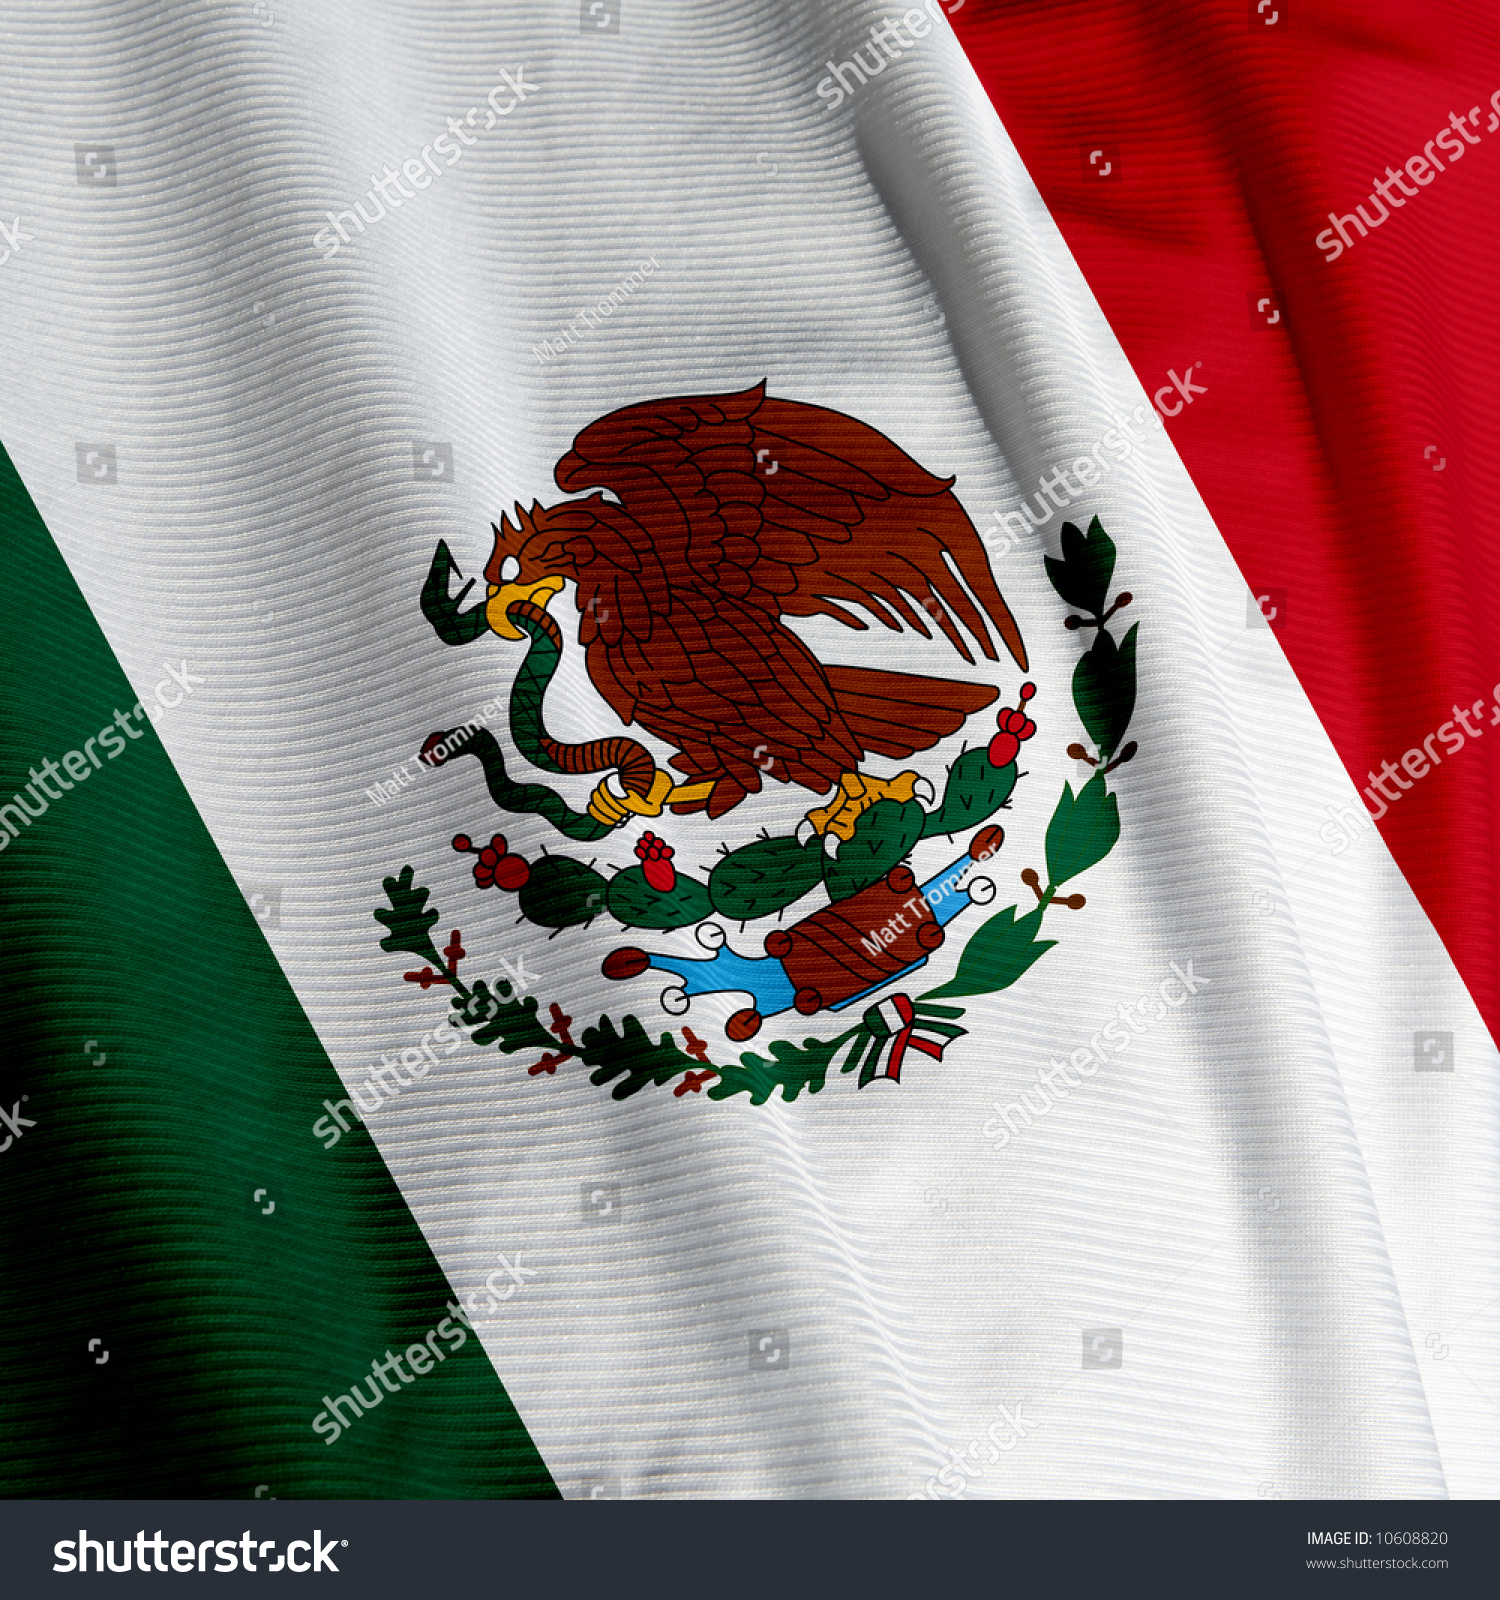 close mexican flag square image stock photo 10608820 shutterstock